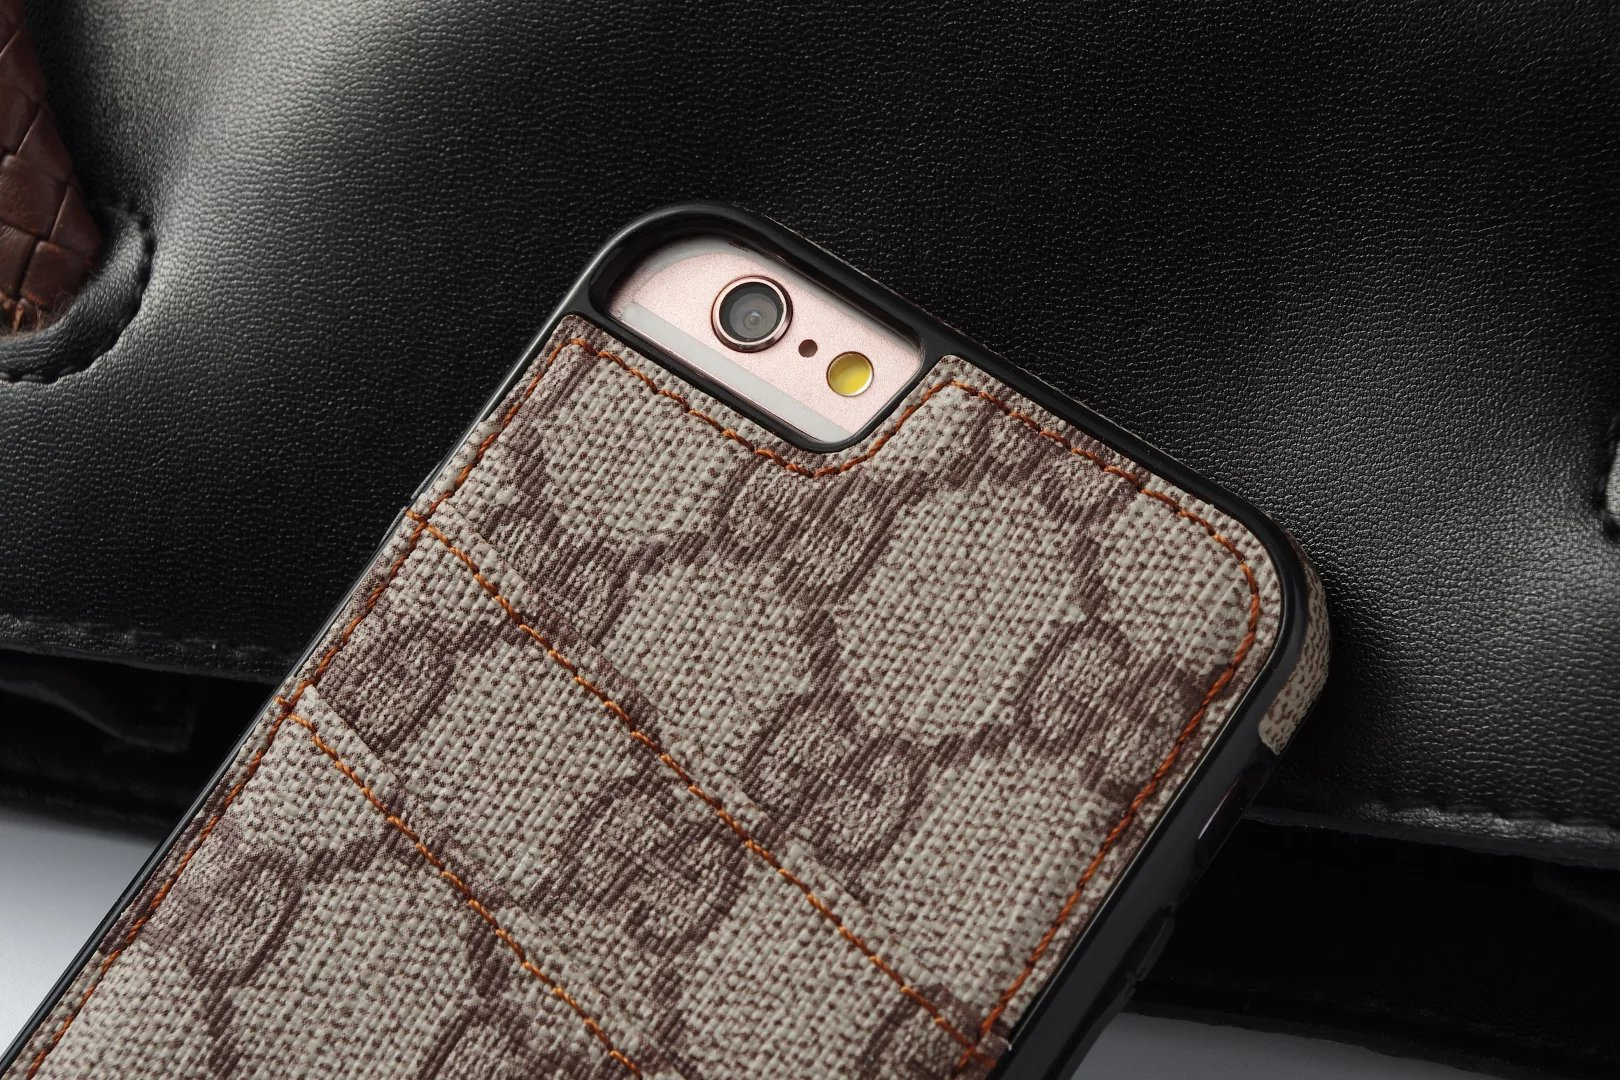 iphone hüllen shop hülle für iphone Louis Vuitton iphone7 Plus hülle iphone 6 veröffentlichung iphone 7 Plus was7rdichte hülle handyhülle galaxy s7 lustige iphone hüllen flip ca7 iphone 7 Plus elbst gestalten iphone 7 Plus hülle wech7ln